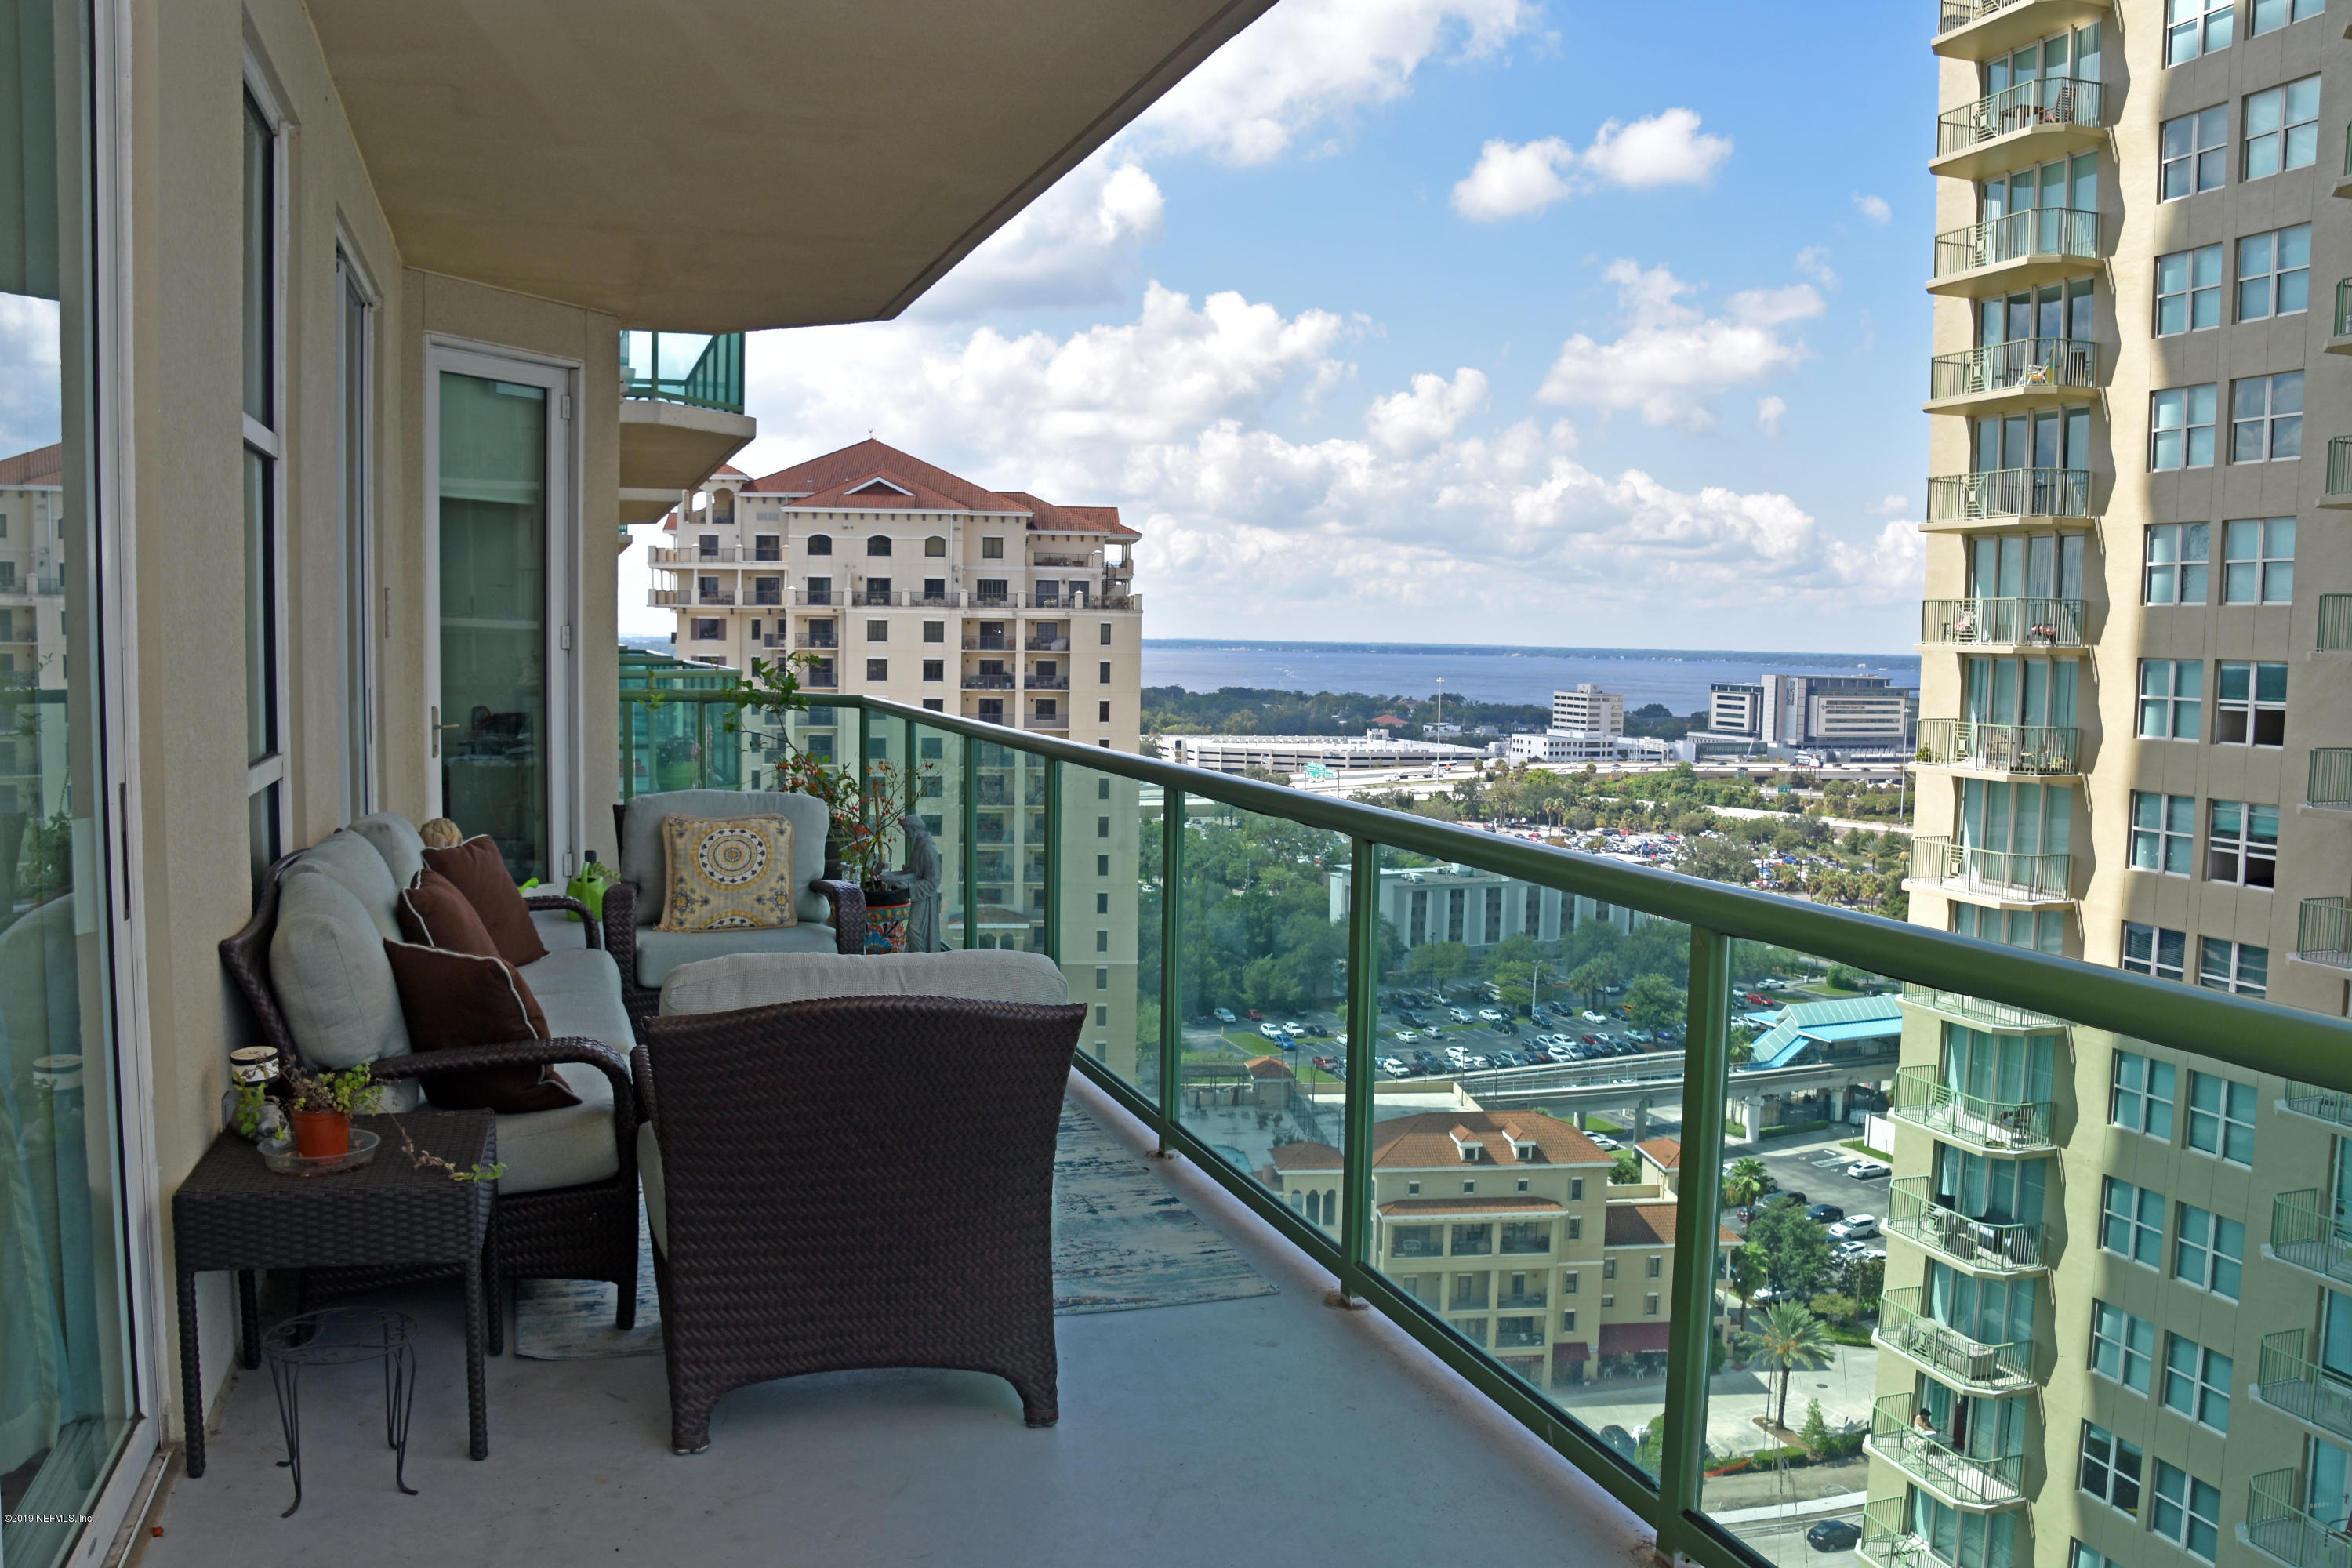 1431 RIVERPLACE, JACKSONVILLE, FLORIDA 32207, 2 Bedrooms Bedrooms, ,2 BathroomsBathrooms,Condo,For sale,RIVERPLACE,1014137